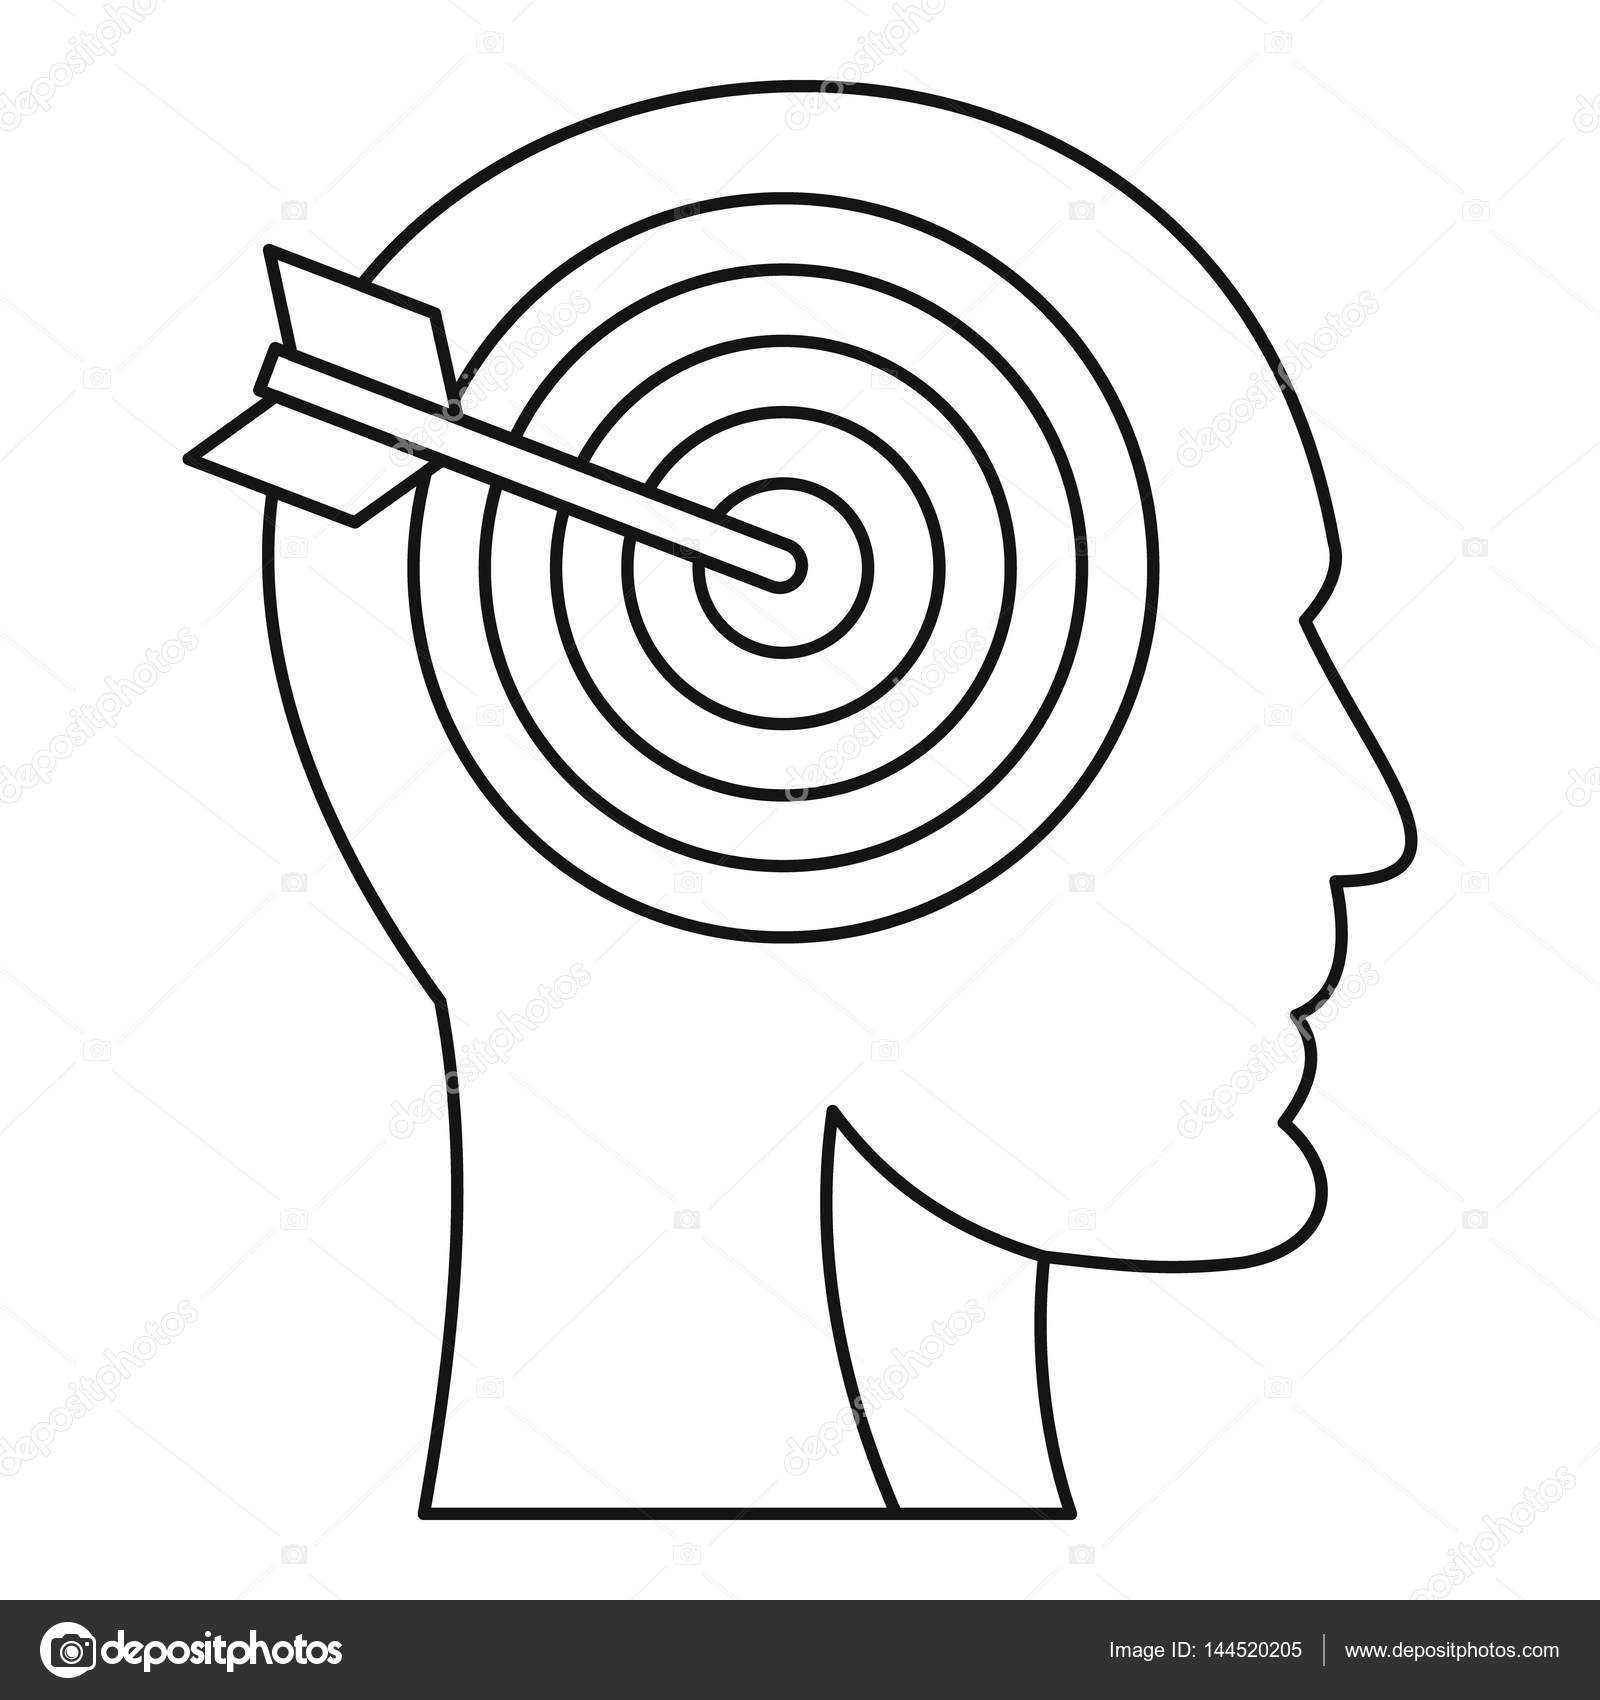 1600x1700 Human Head Profile With Target Inside Icon Stock Vector